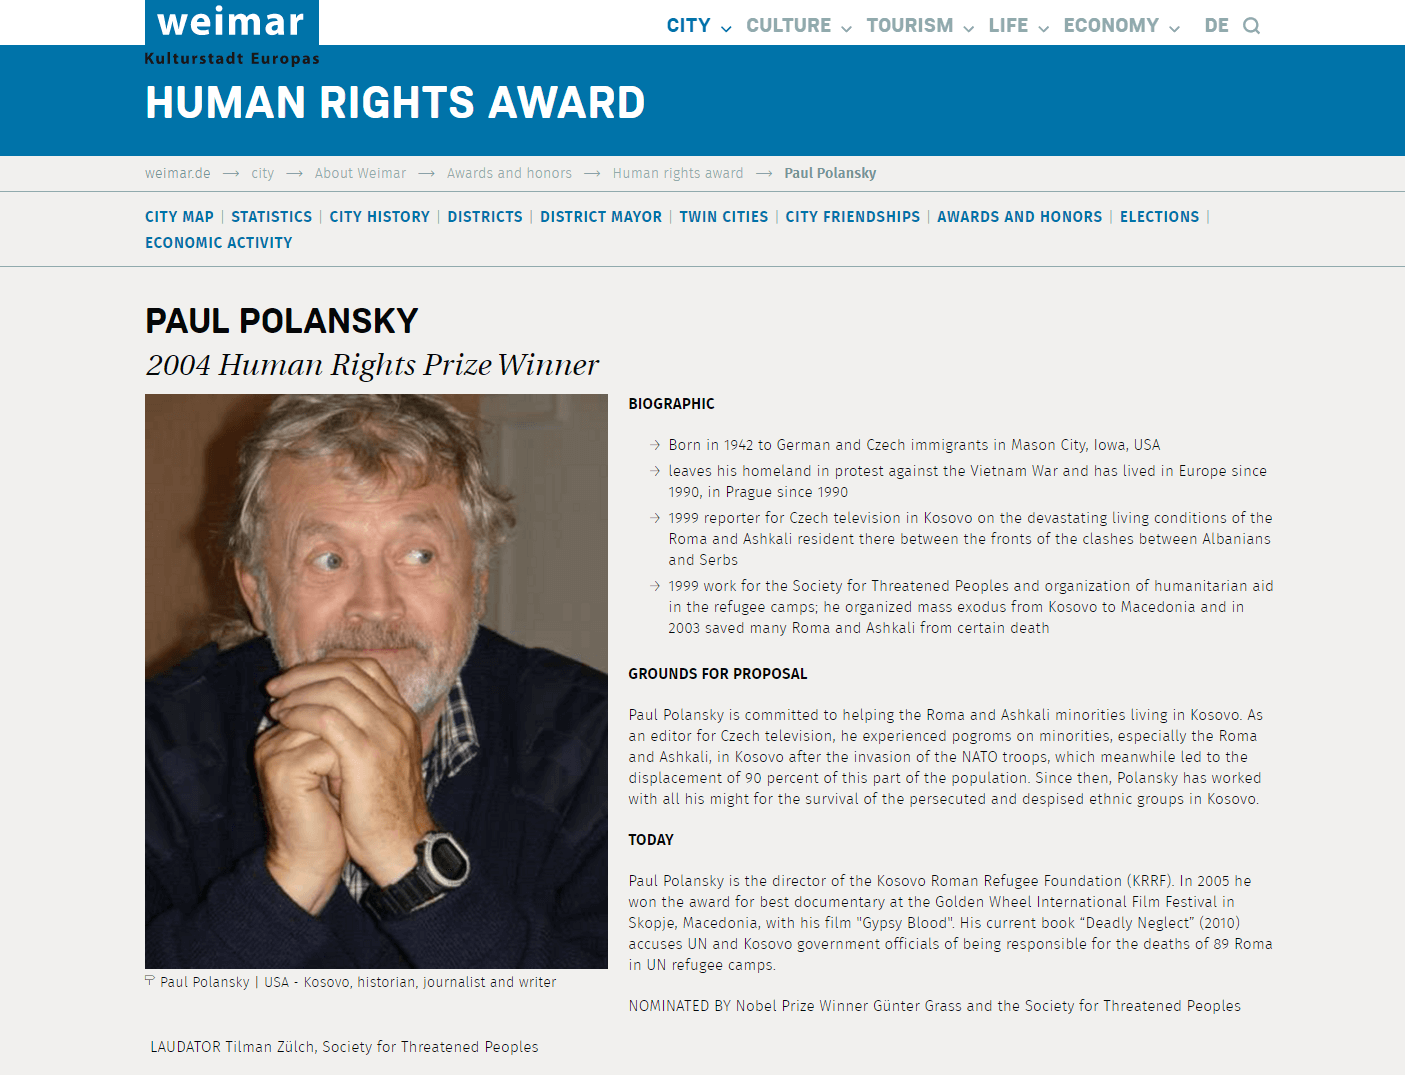 2004 Weimar Human Right Award